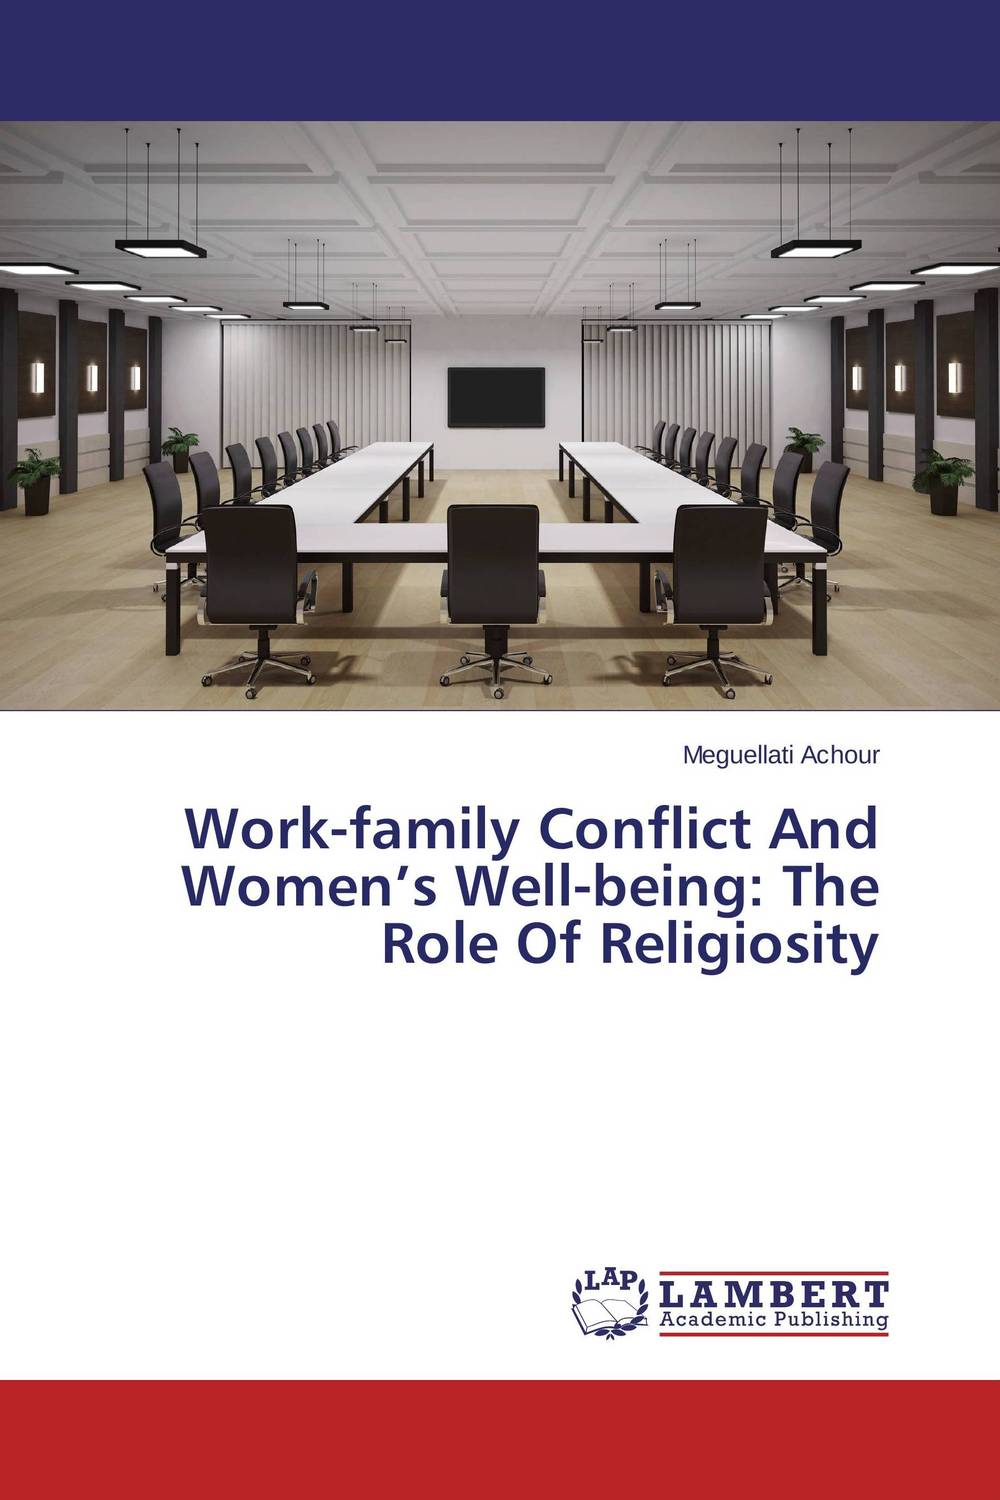 Work-family Conflict And Women's Well-being: The Role Of Religiosity sadiq sagheer job stress role conflict work life balance impacts on sales personnel